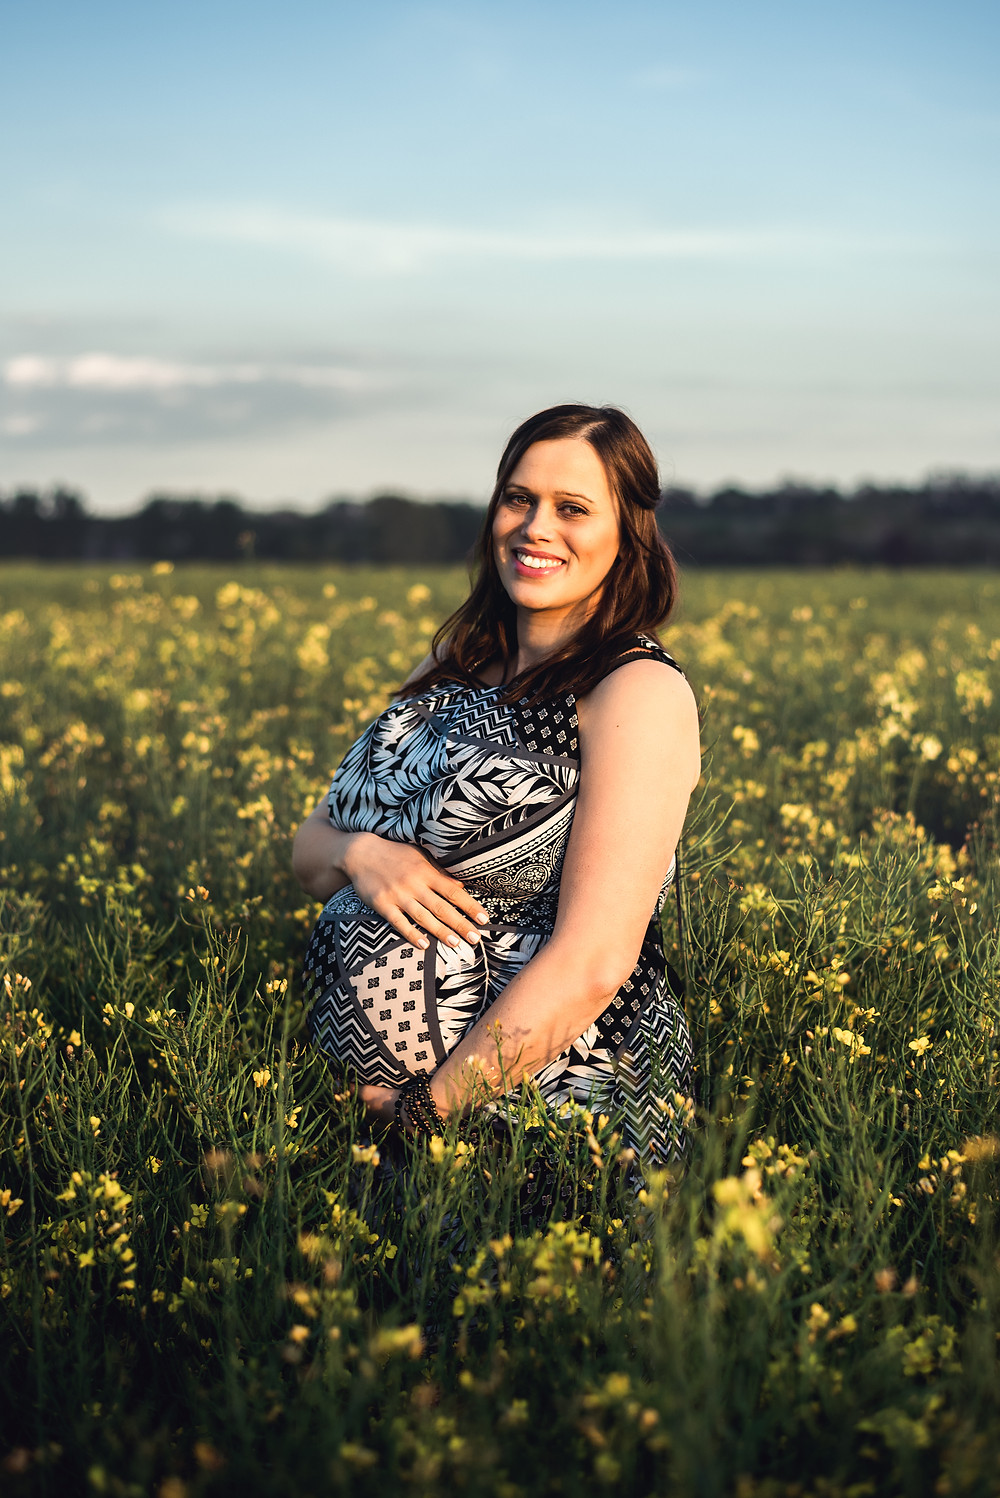 Baby bump pregnancy photo shoot Coventry Lutterworth Warwickshire outdoors